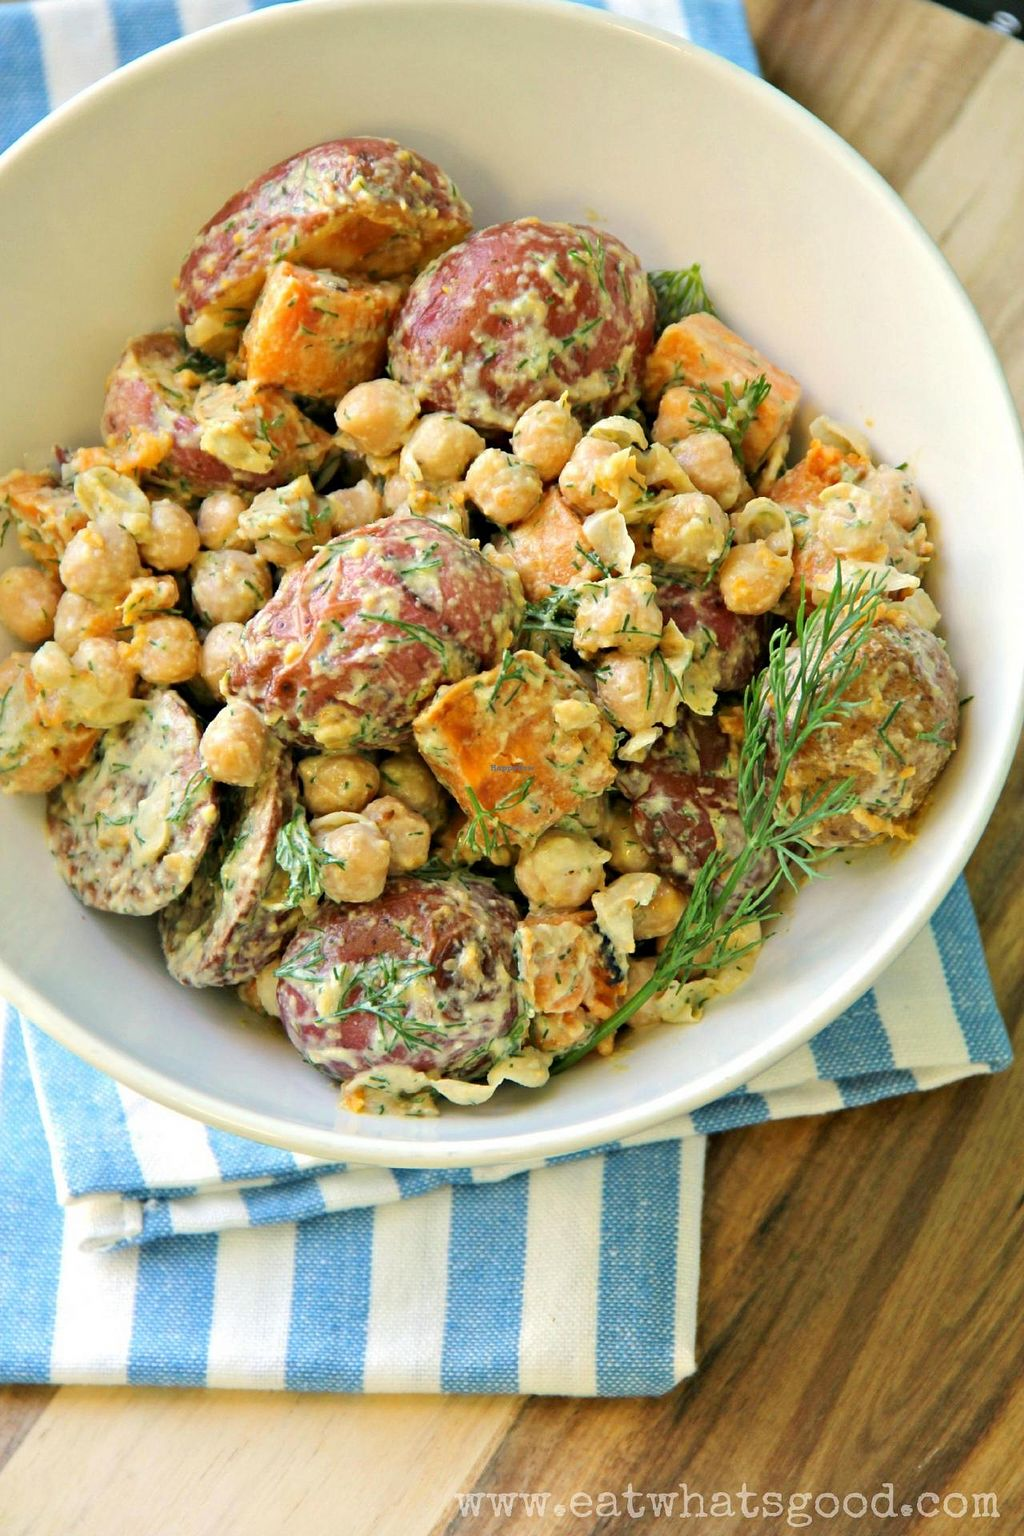 "Photo of Eat What's Good  by <a href=""/members/profile/Eat_Whats_Good"">Eat_Whats_Good</a> <br/>Dill Tahini Roasted Potato Salad <br/> July 15, 2014  - <a href='/contact/abuse/image/47686/74160'>Report</a>"